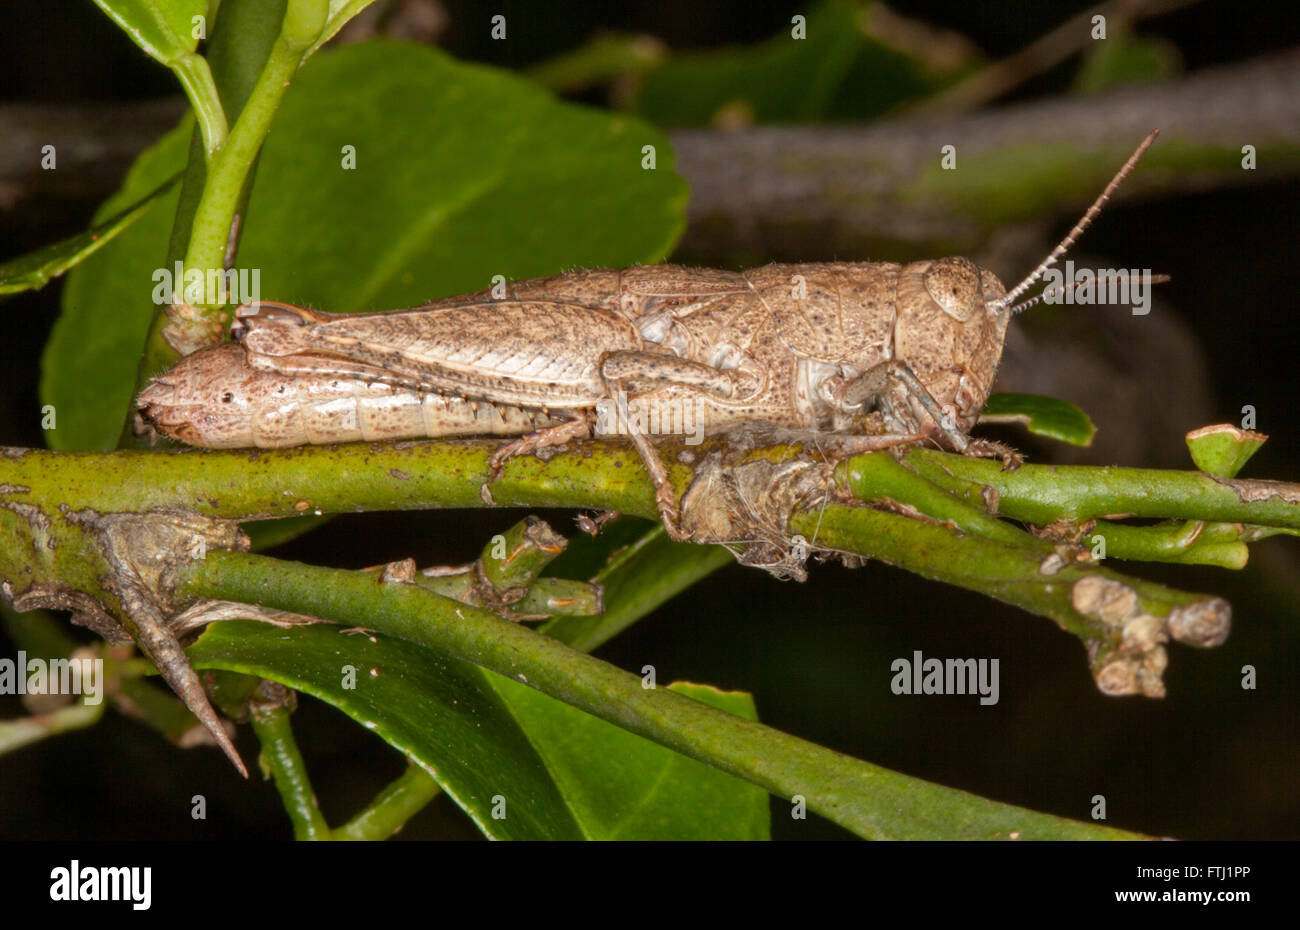 Panoramic image of brown grasshopper camouflaged as twig on stem of plant with emerald green leaves in Australian Stock Photo